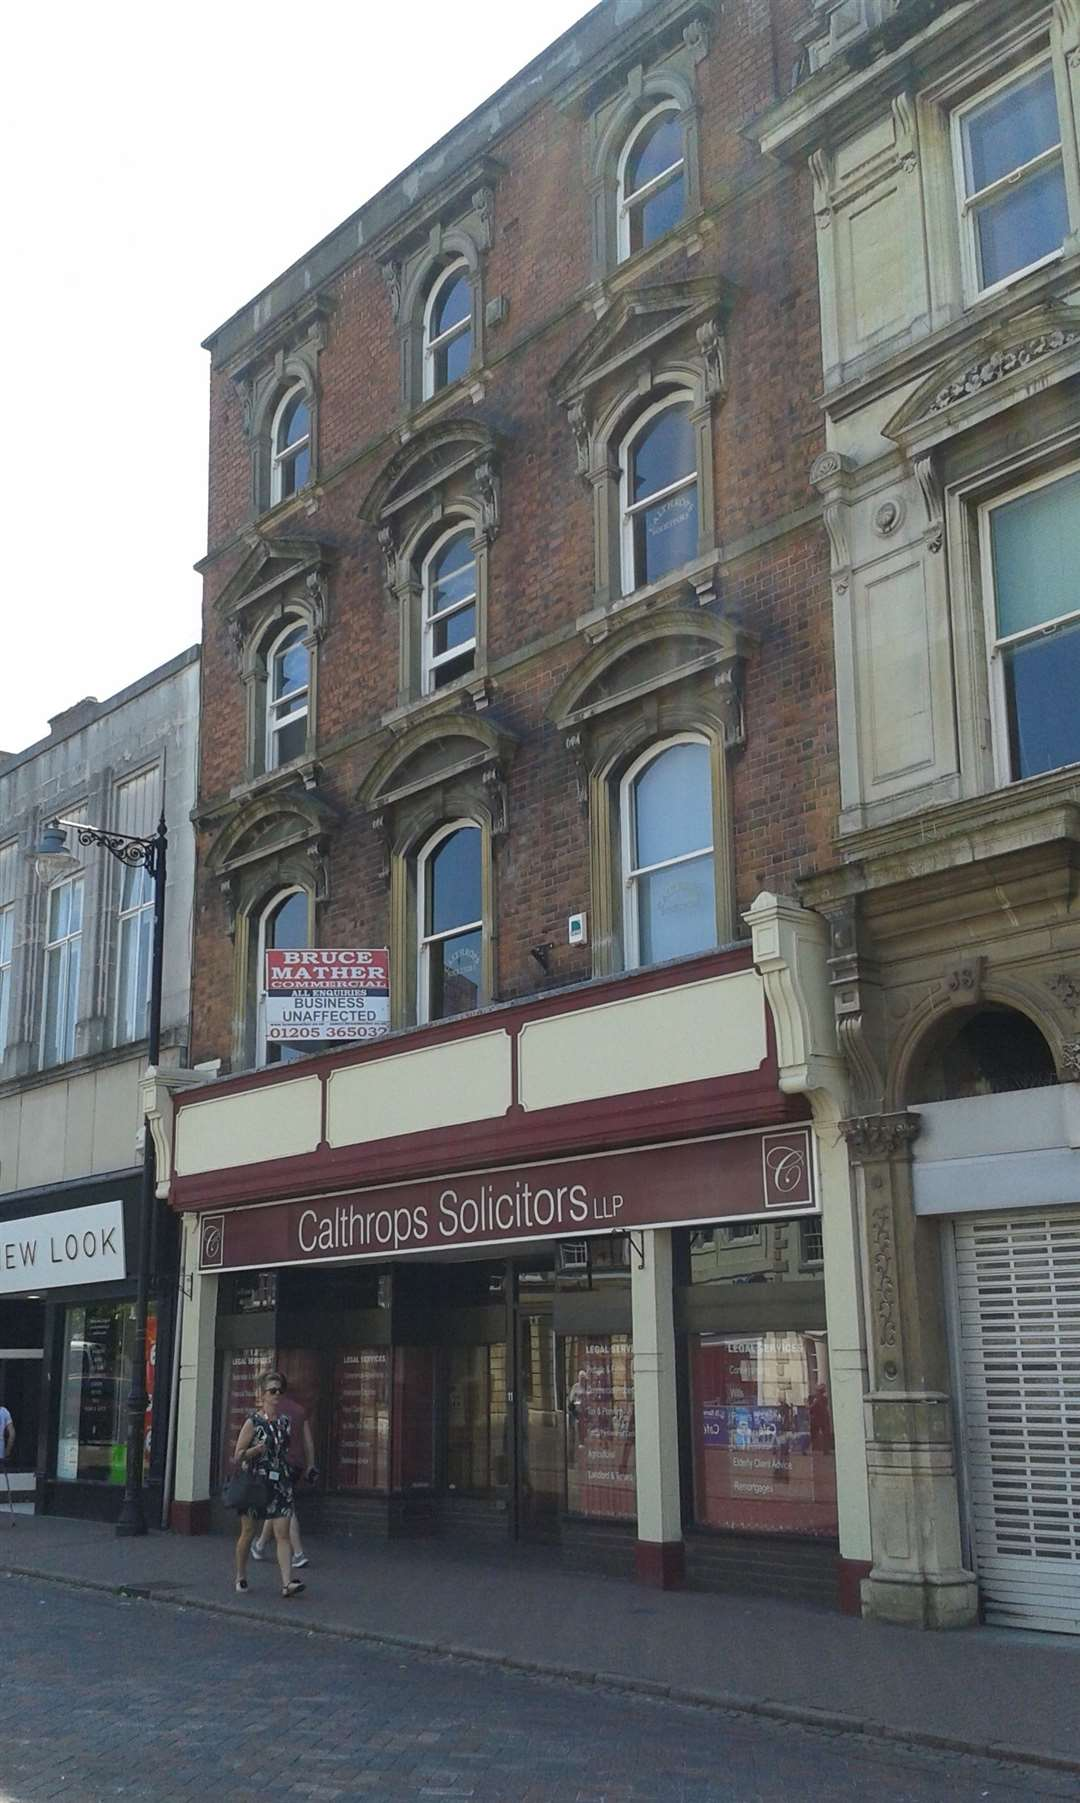 The building is up for sale but Calthrops business is unaffected.